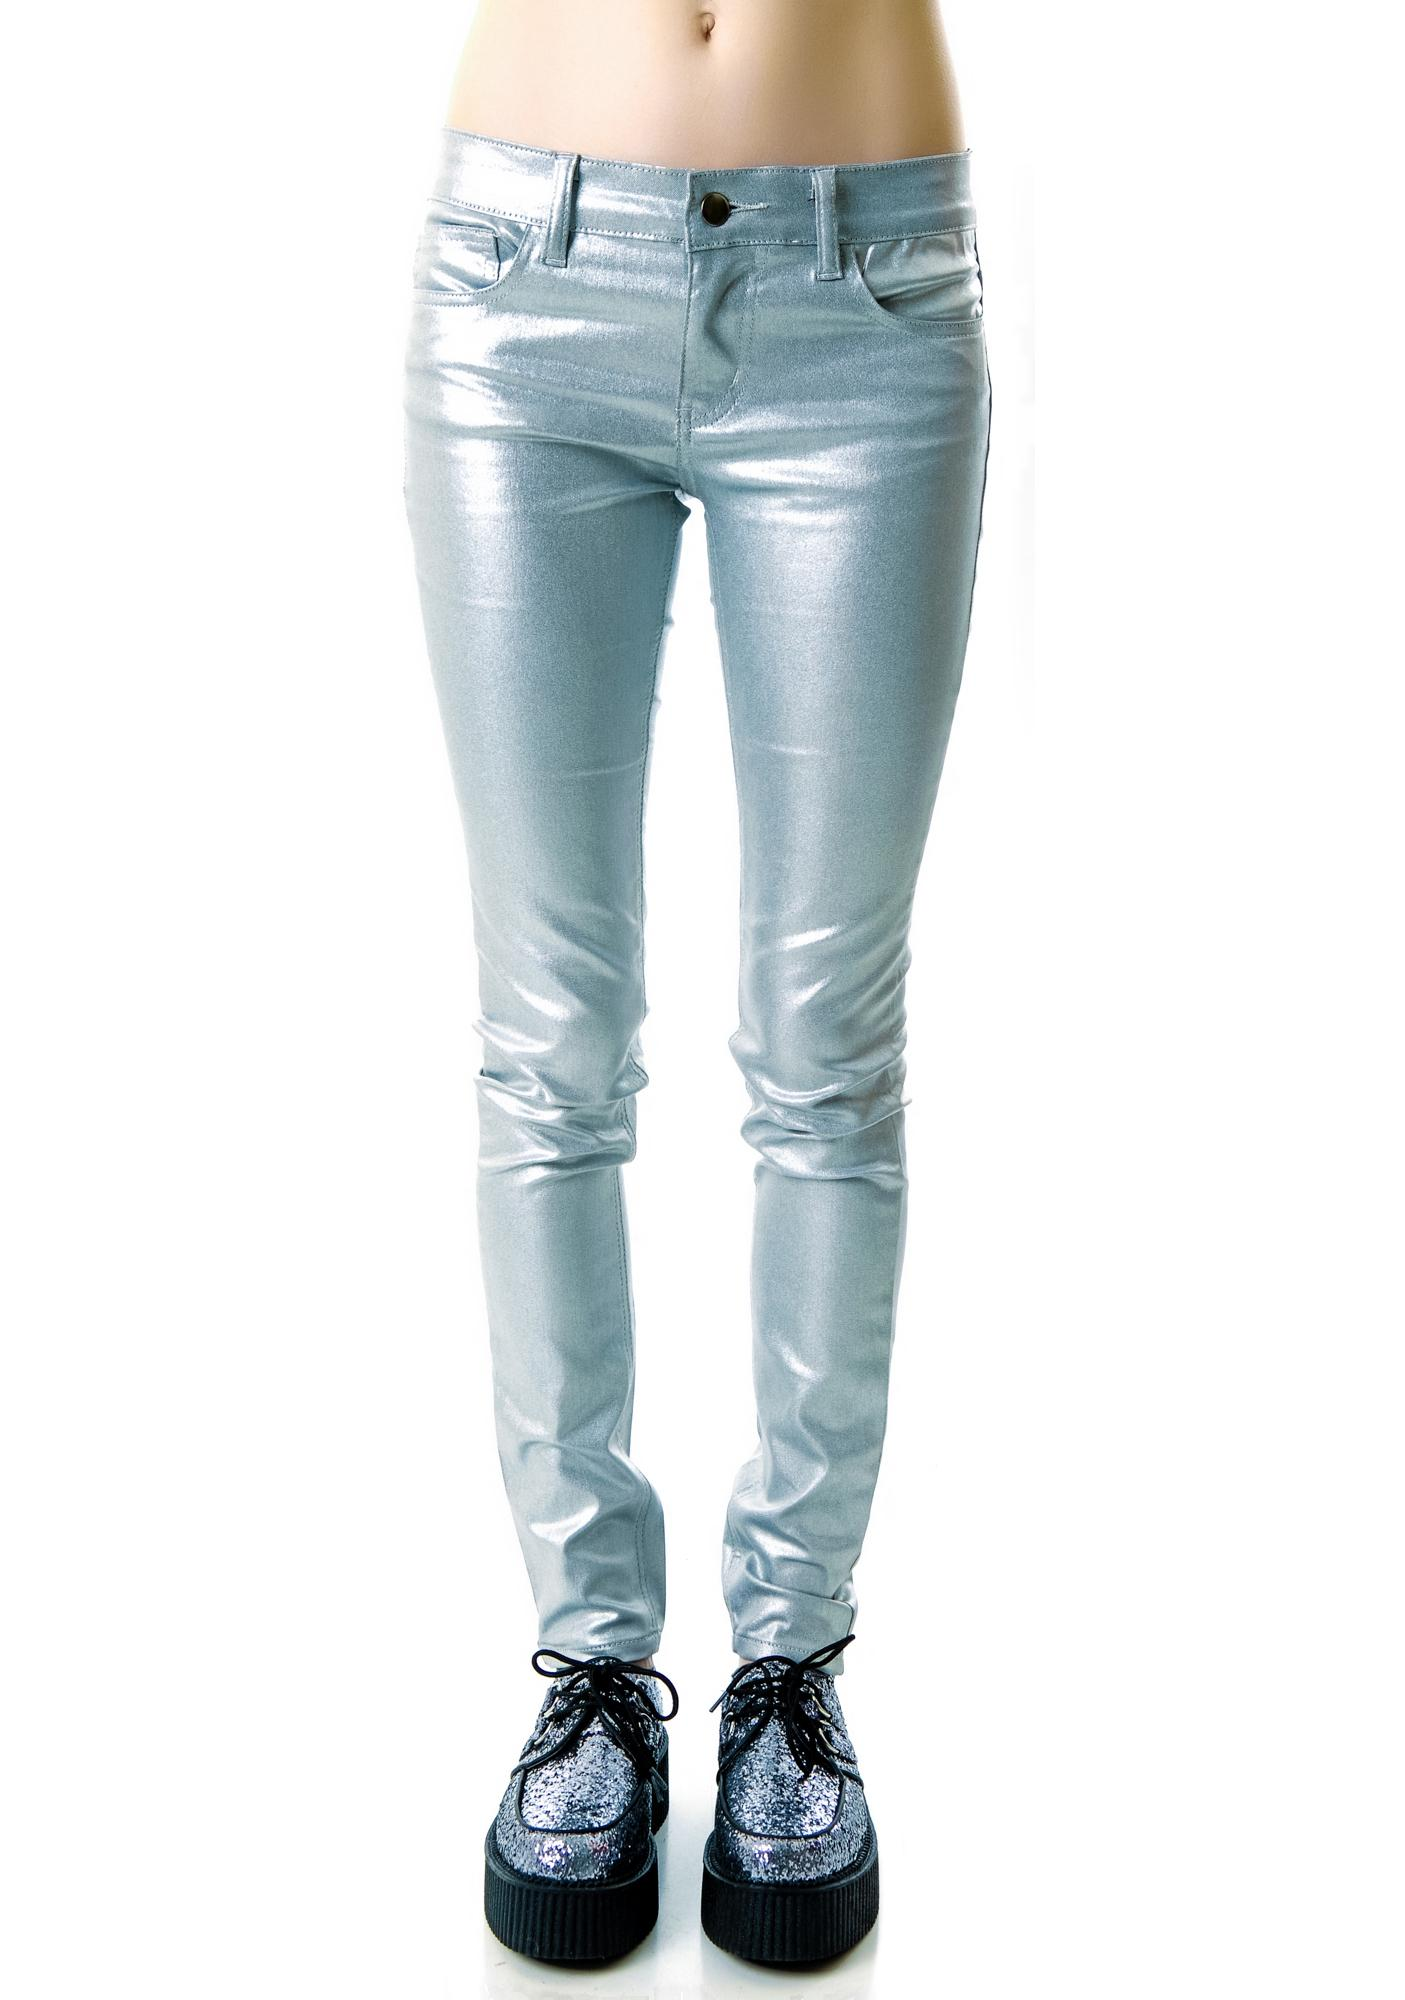 Lip Service Shimmer Stretch Jeans